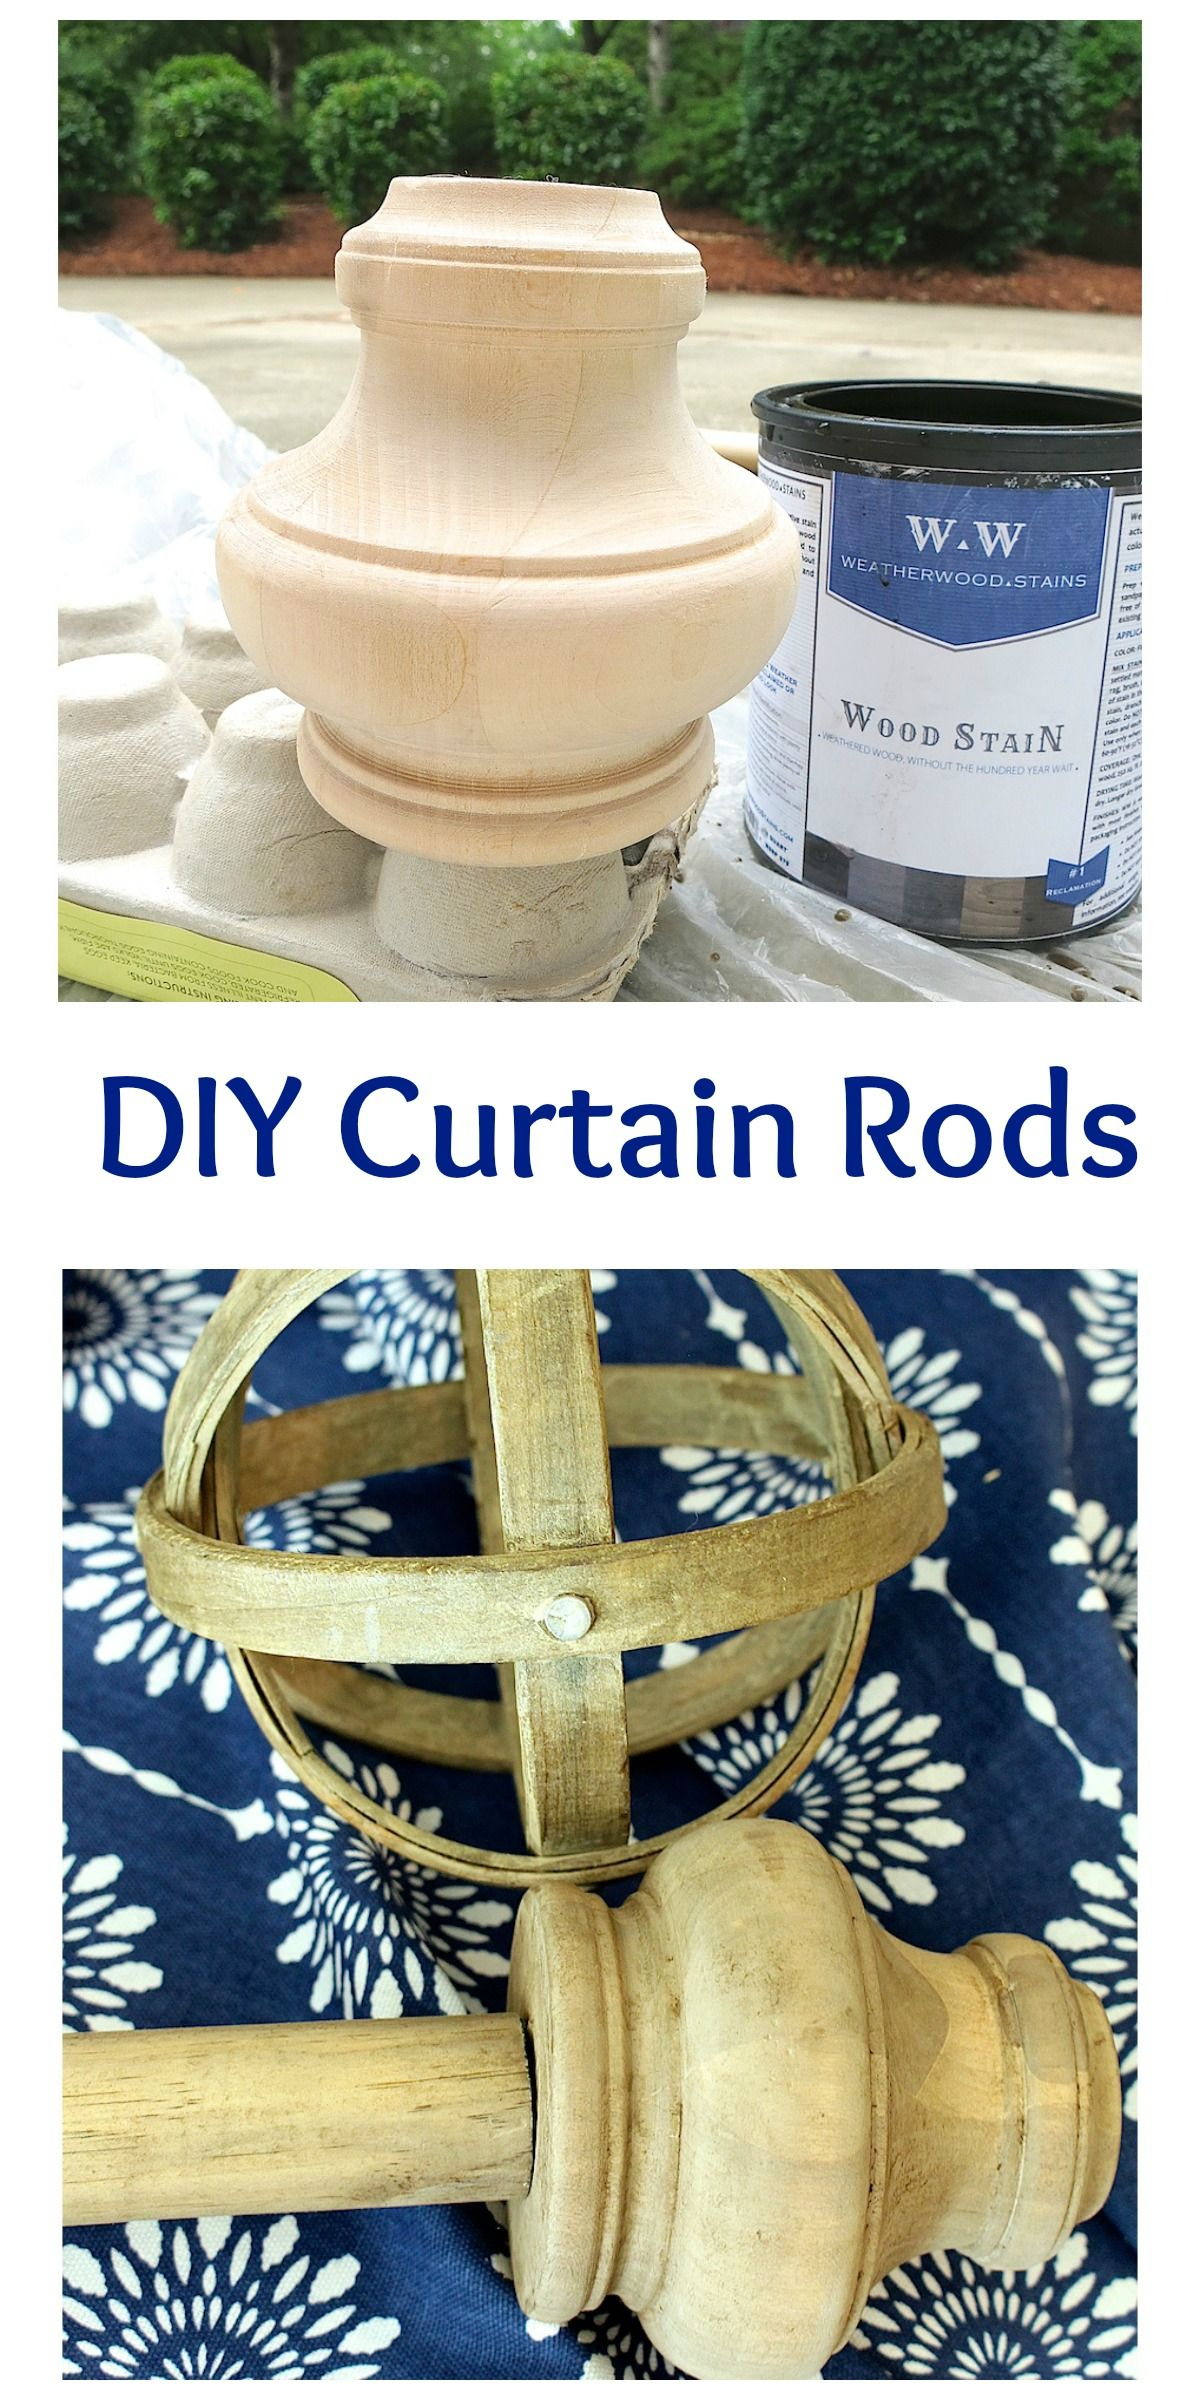 Diy copper curtain rods that wont break the bank diy how to window - Diy Curtain Rods Using A Broomstick And Furniture Feet We Gave It An Aged Barnwood